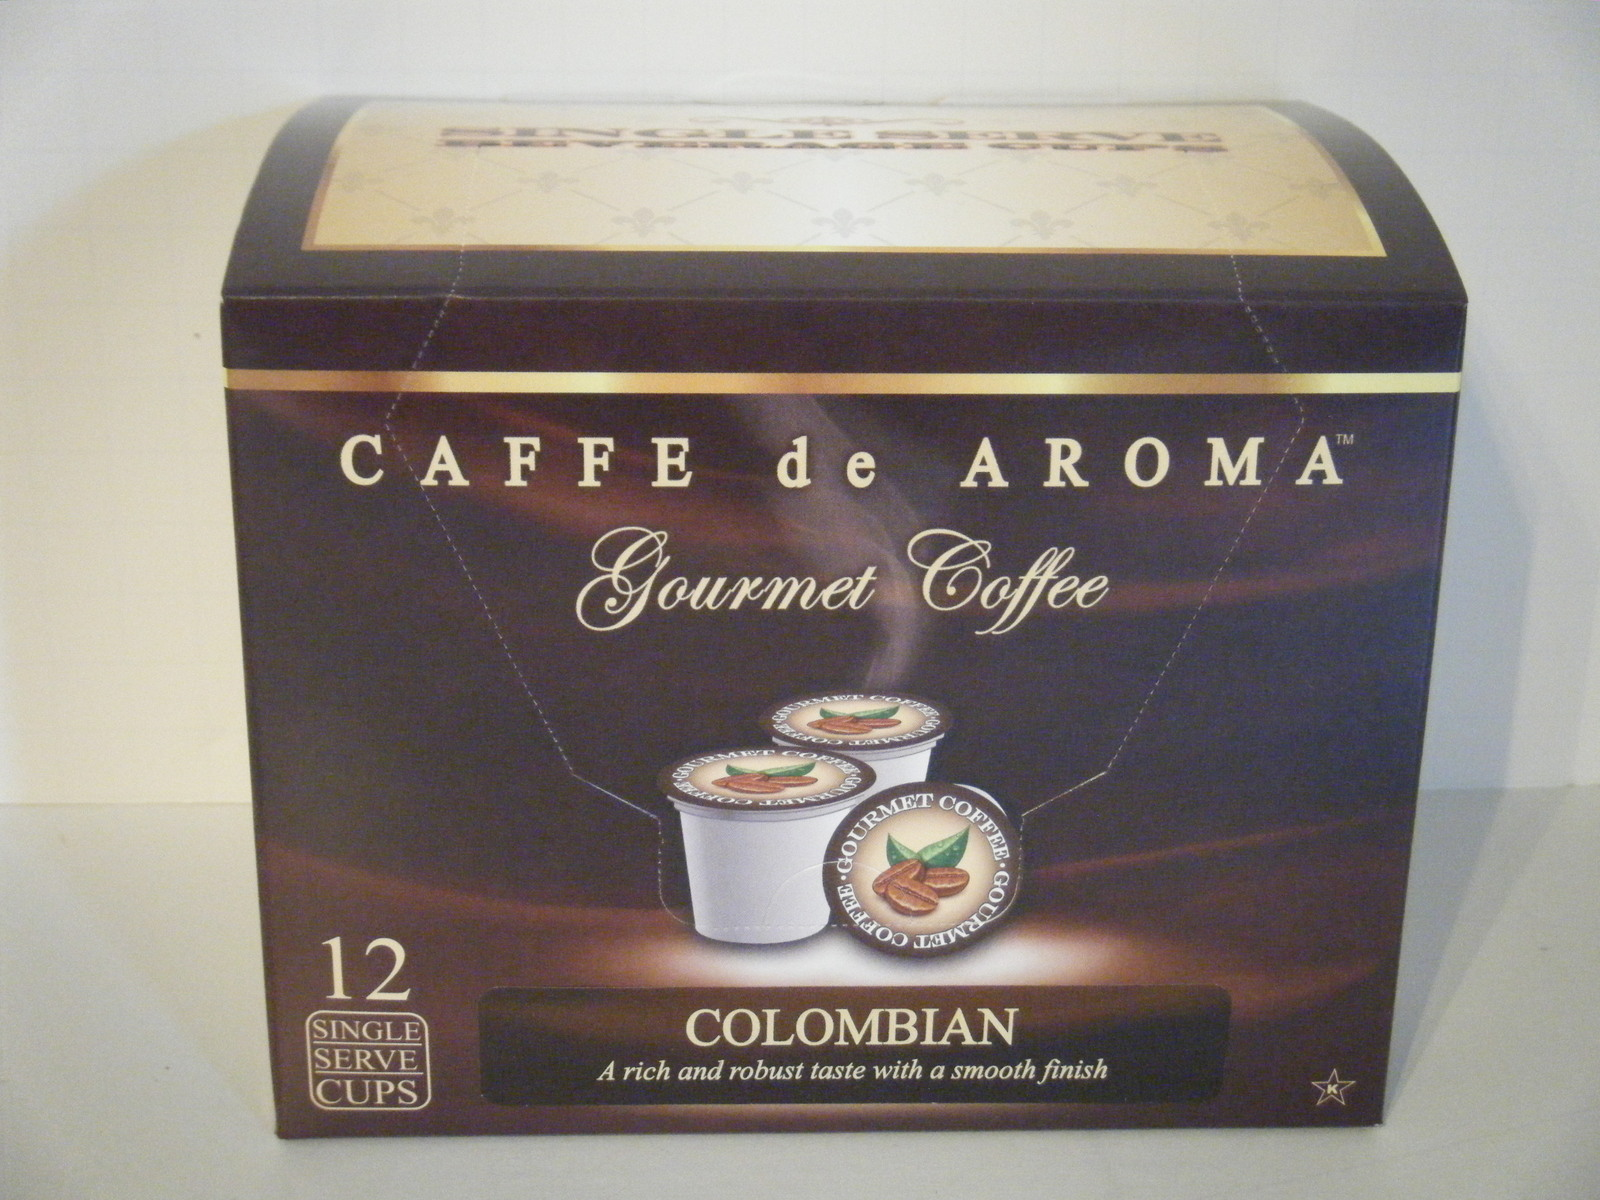 Premium Colombia Coffee in Single Serve Cups for K-Cup Brewer. Free Shipping